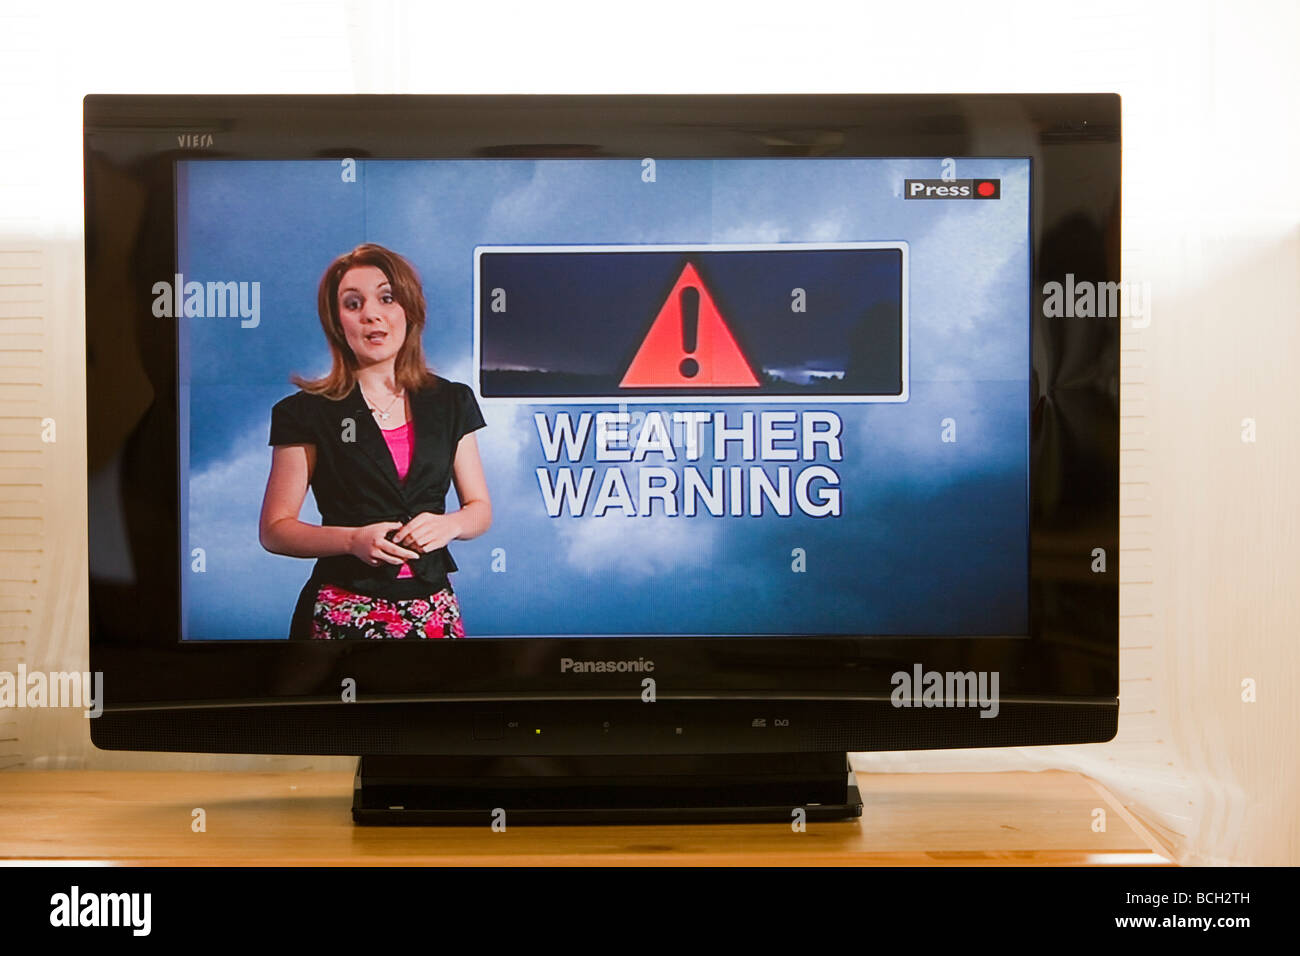 A TV weather forecast forecasting a thunderstorm in the UK - Stock Image